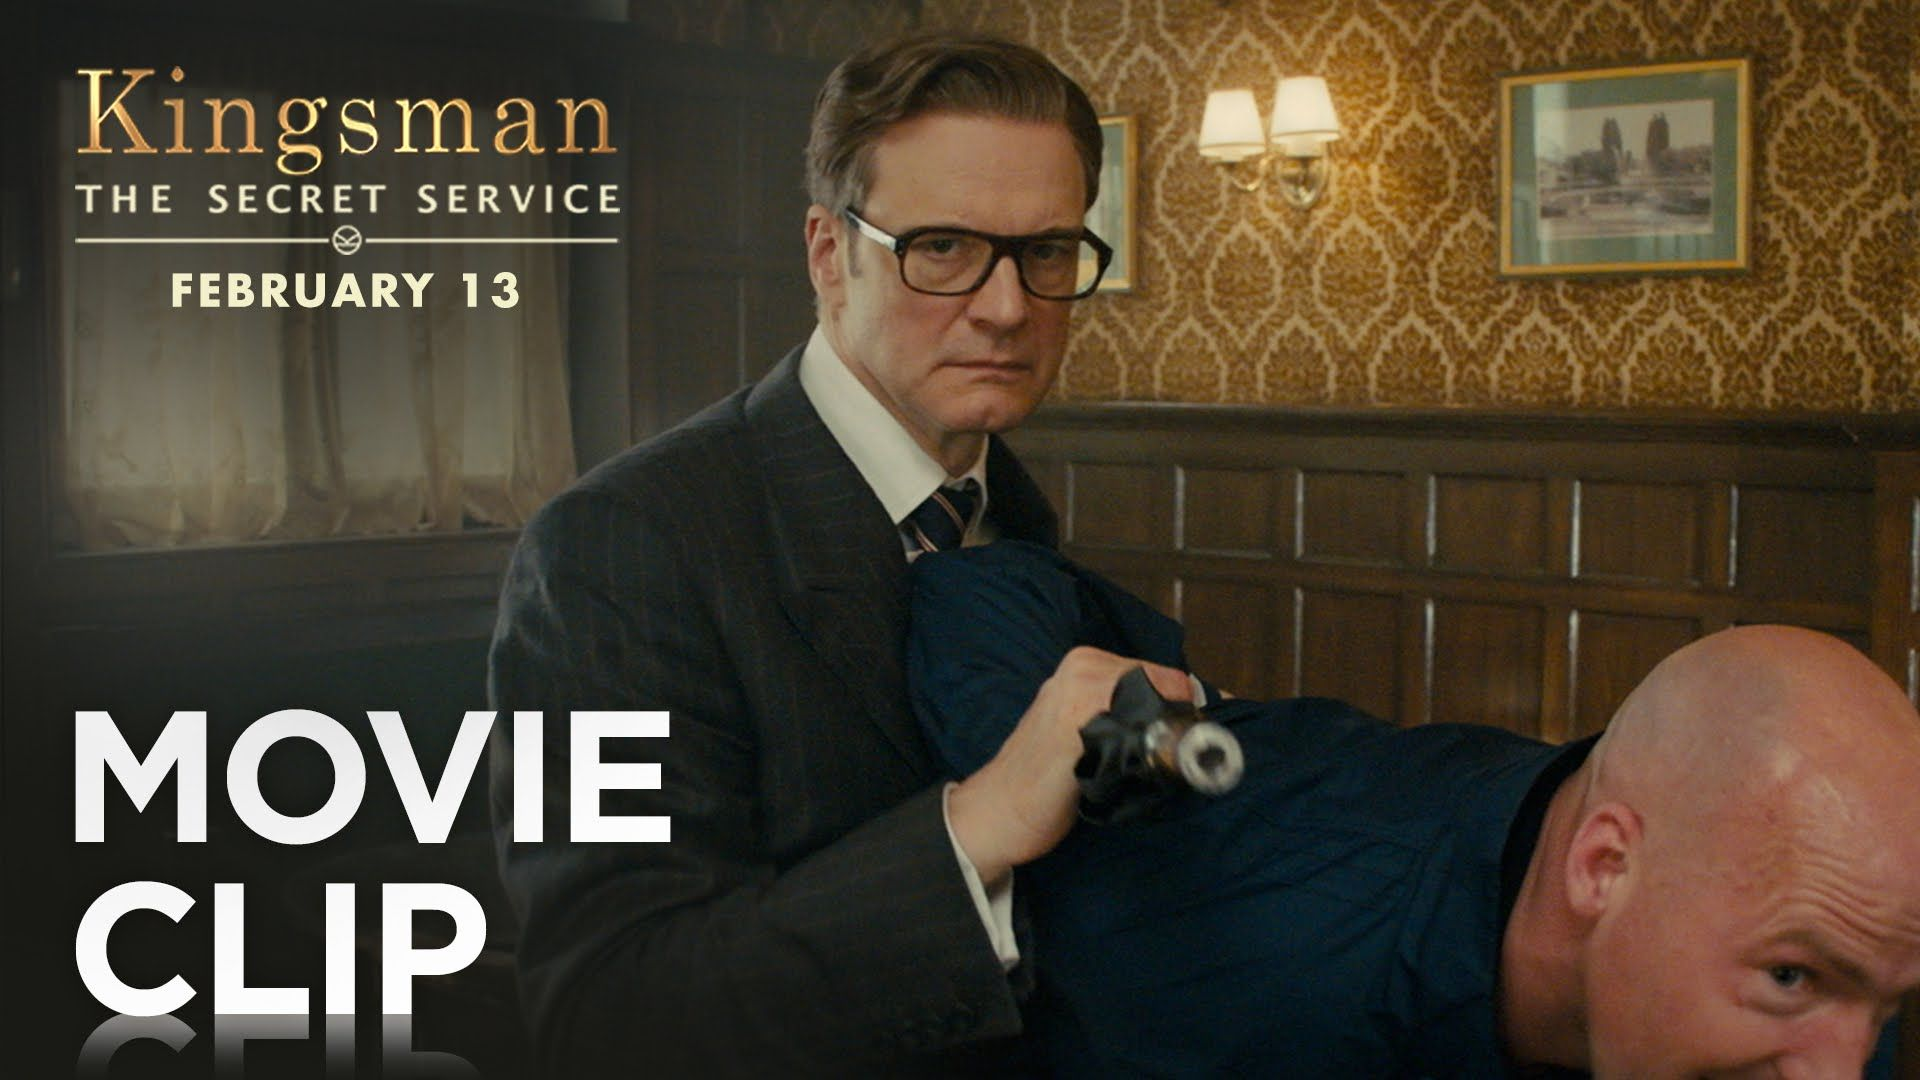 Never underestimate a Kingsman. Watch the brand new clip